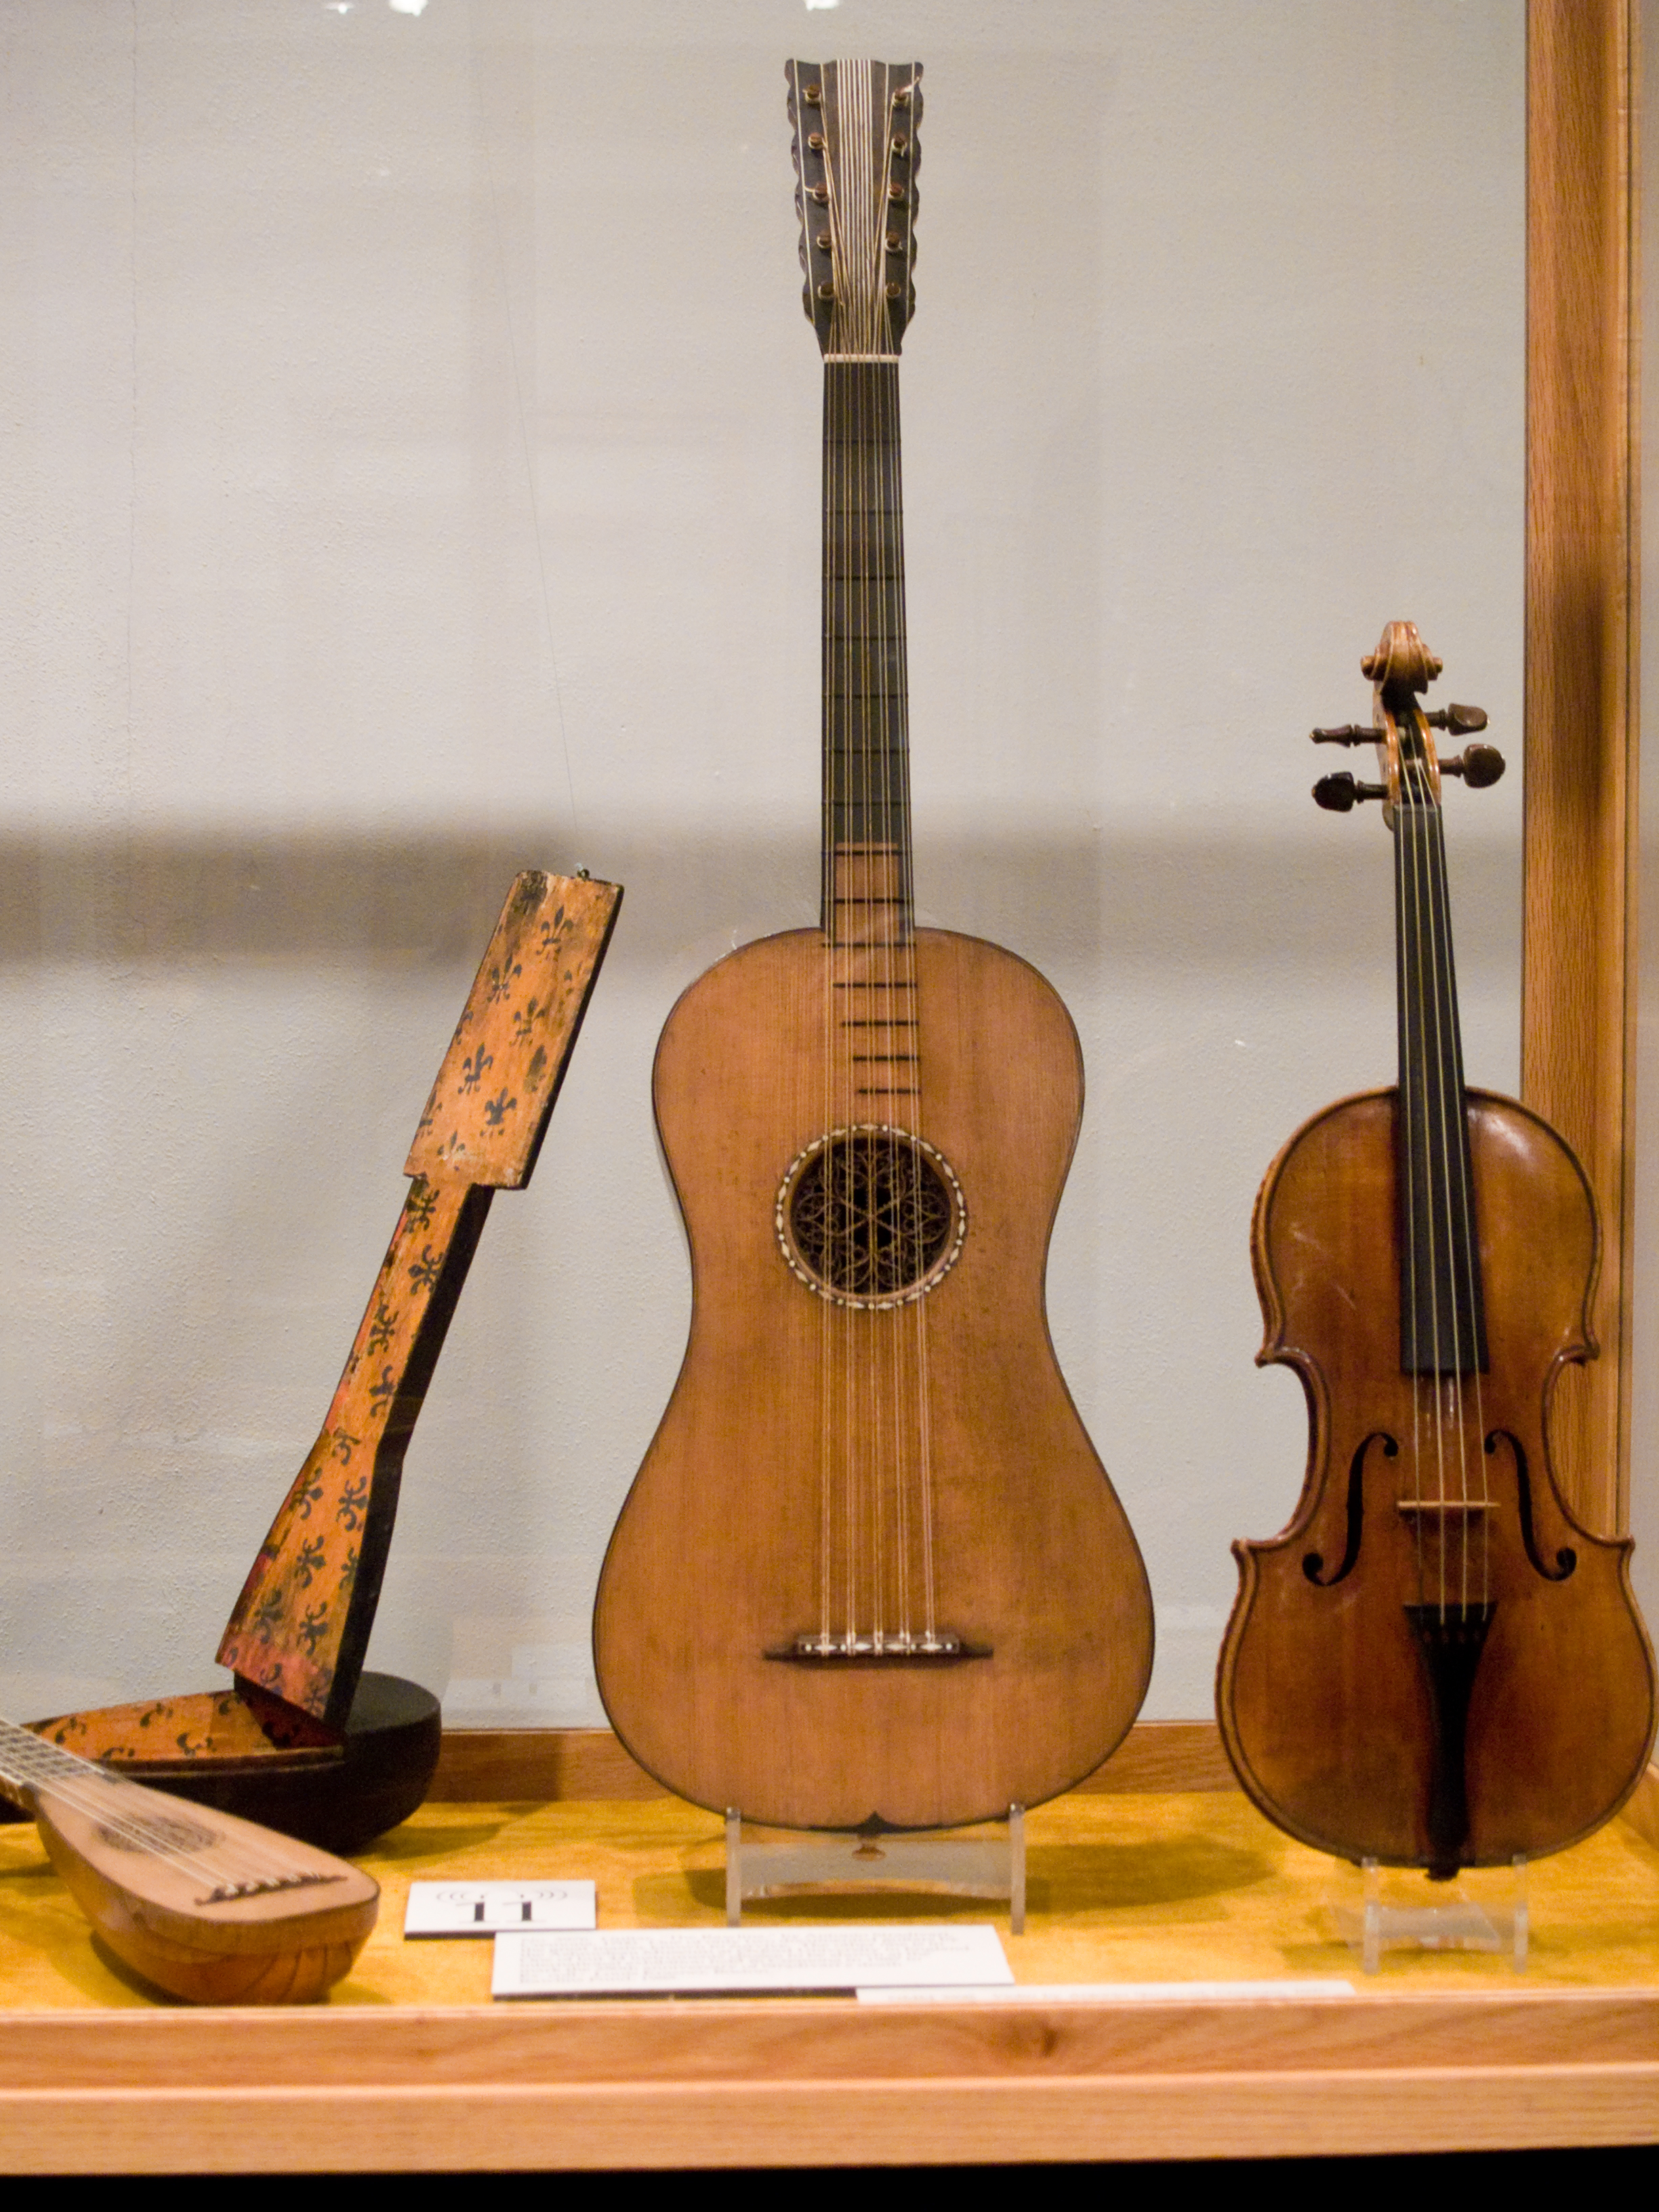 File:Stradavarius Guitar, violin, mandolin and case, National ...